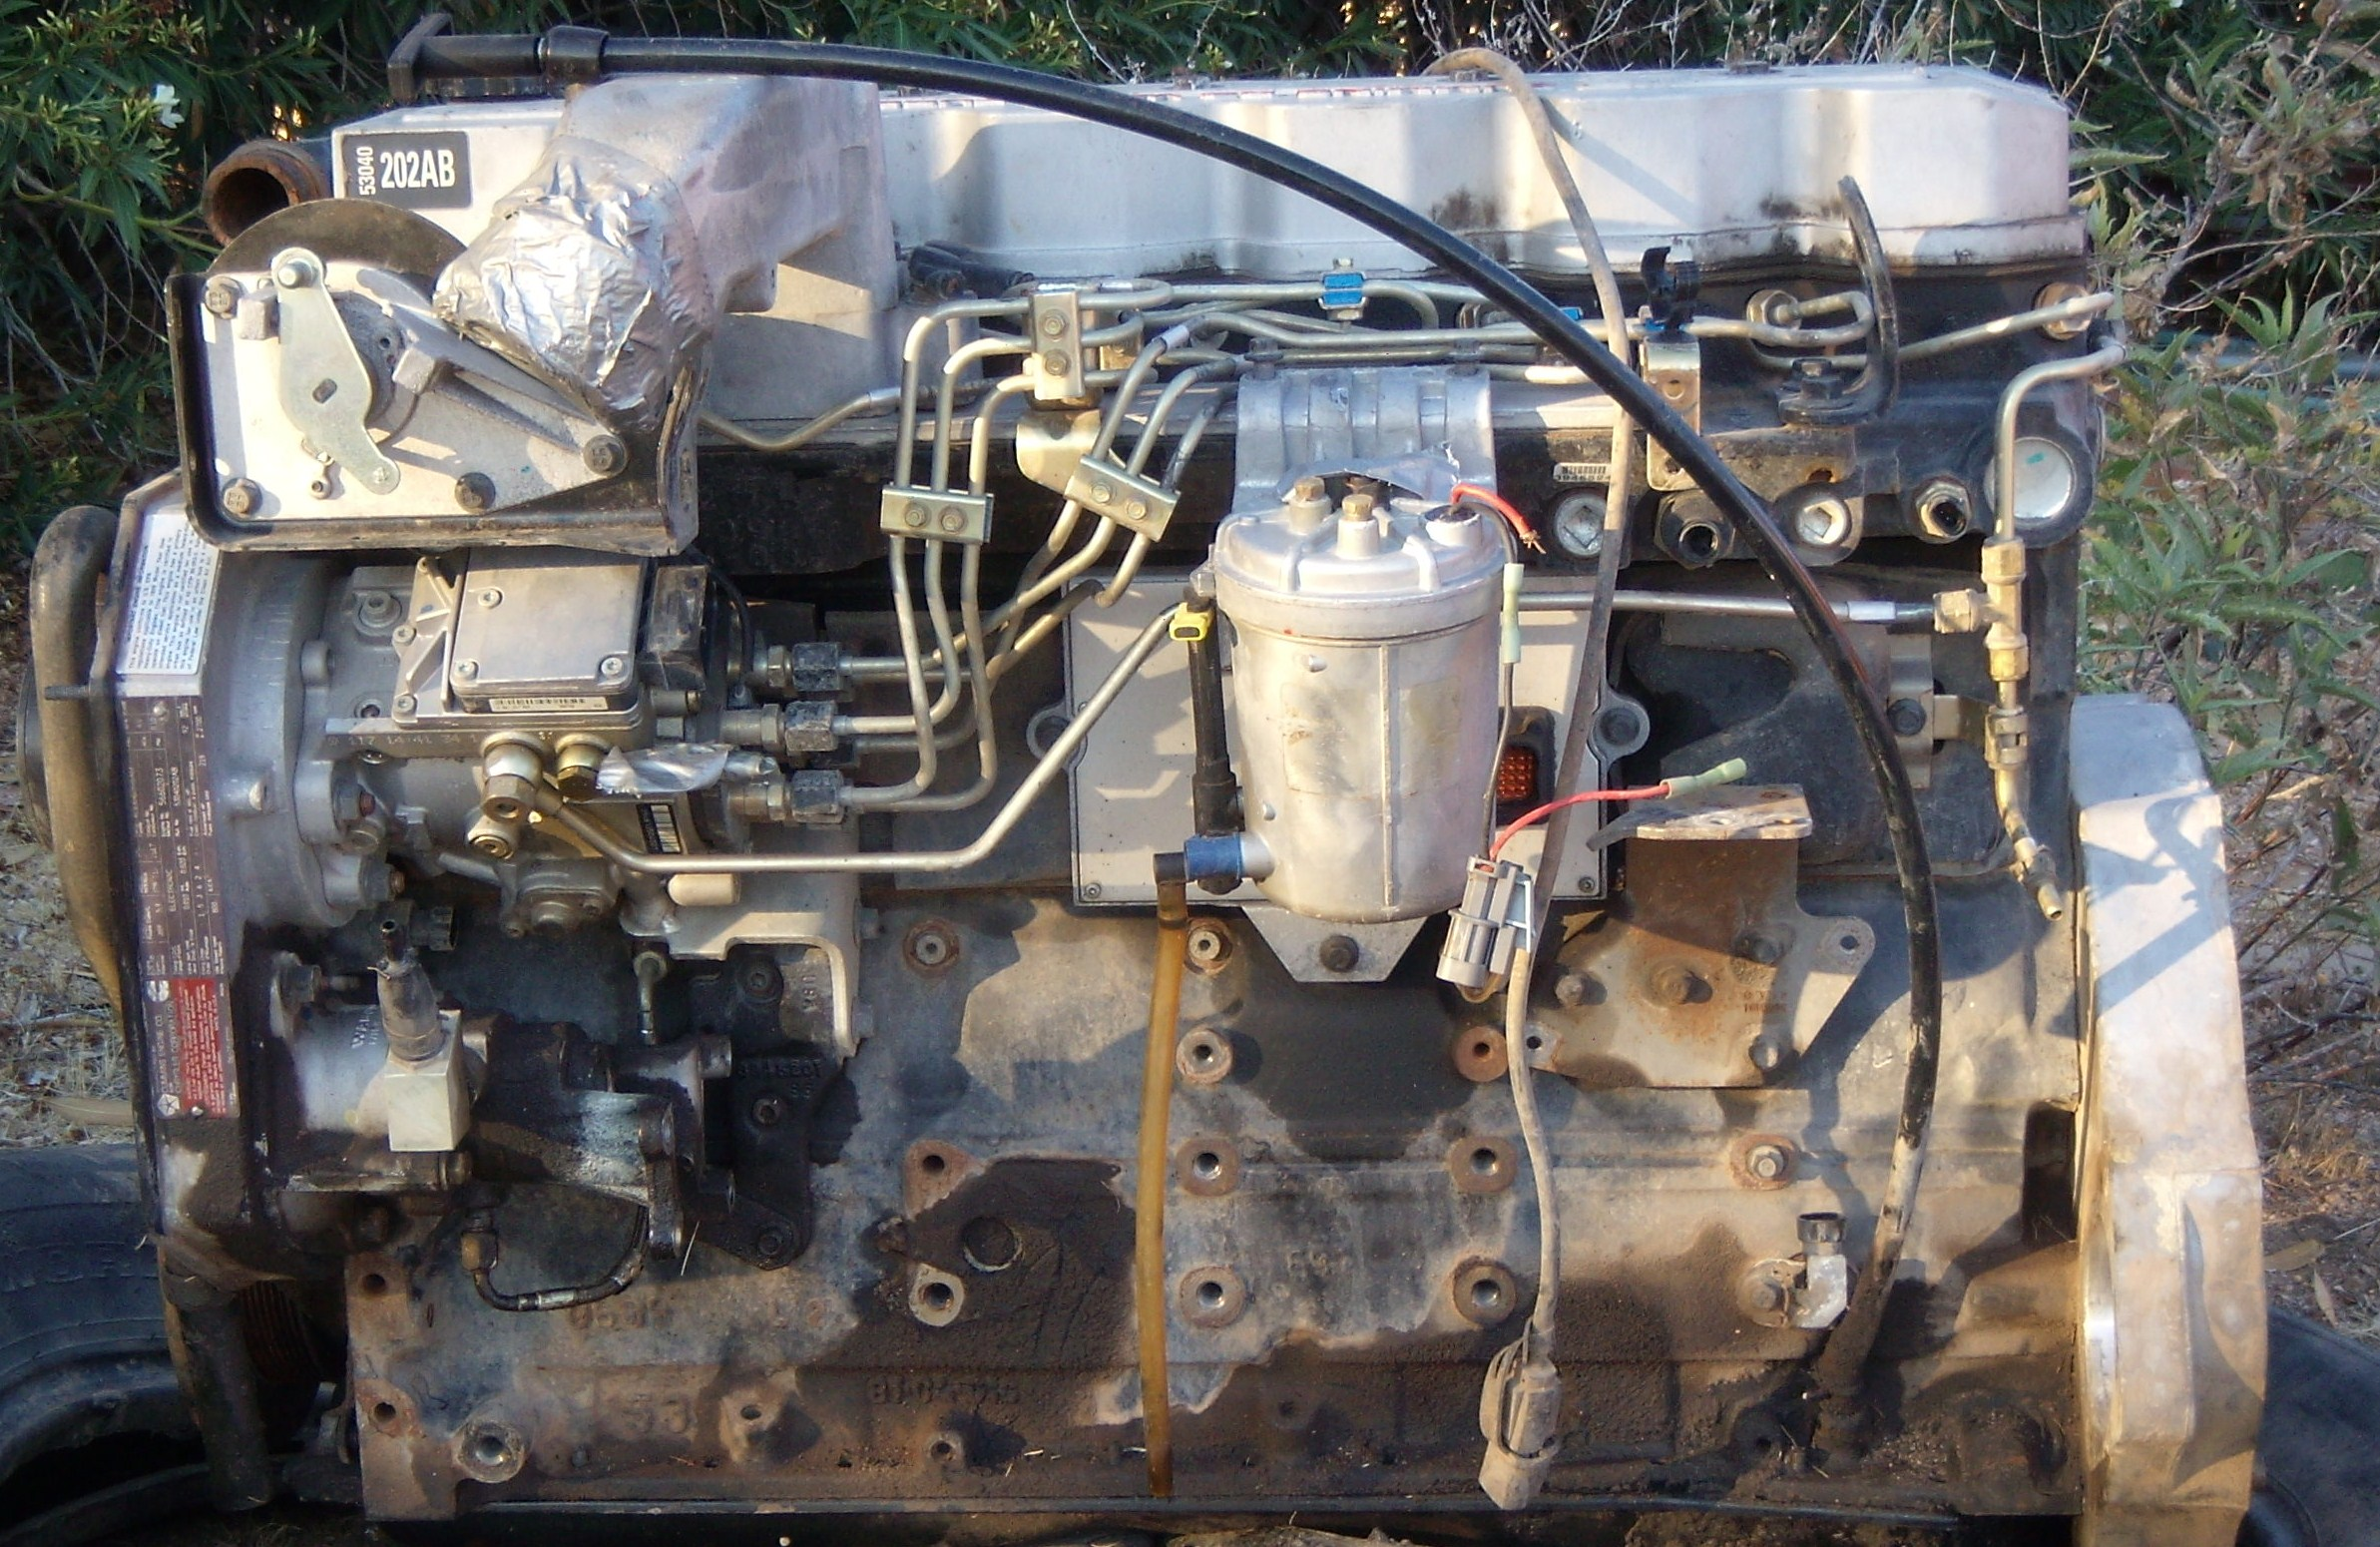 Dodge Nitro Heater Core Diagram in addition Dodge Caliber Sxt Engine Diagram as well MV3w 12099 furthermore Destination Brochure likewise Diagram Of 2007 Dodge Caliber Engine. on dodge nitro thermostat location